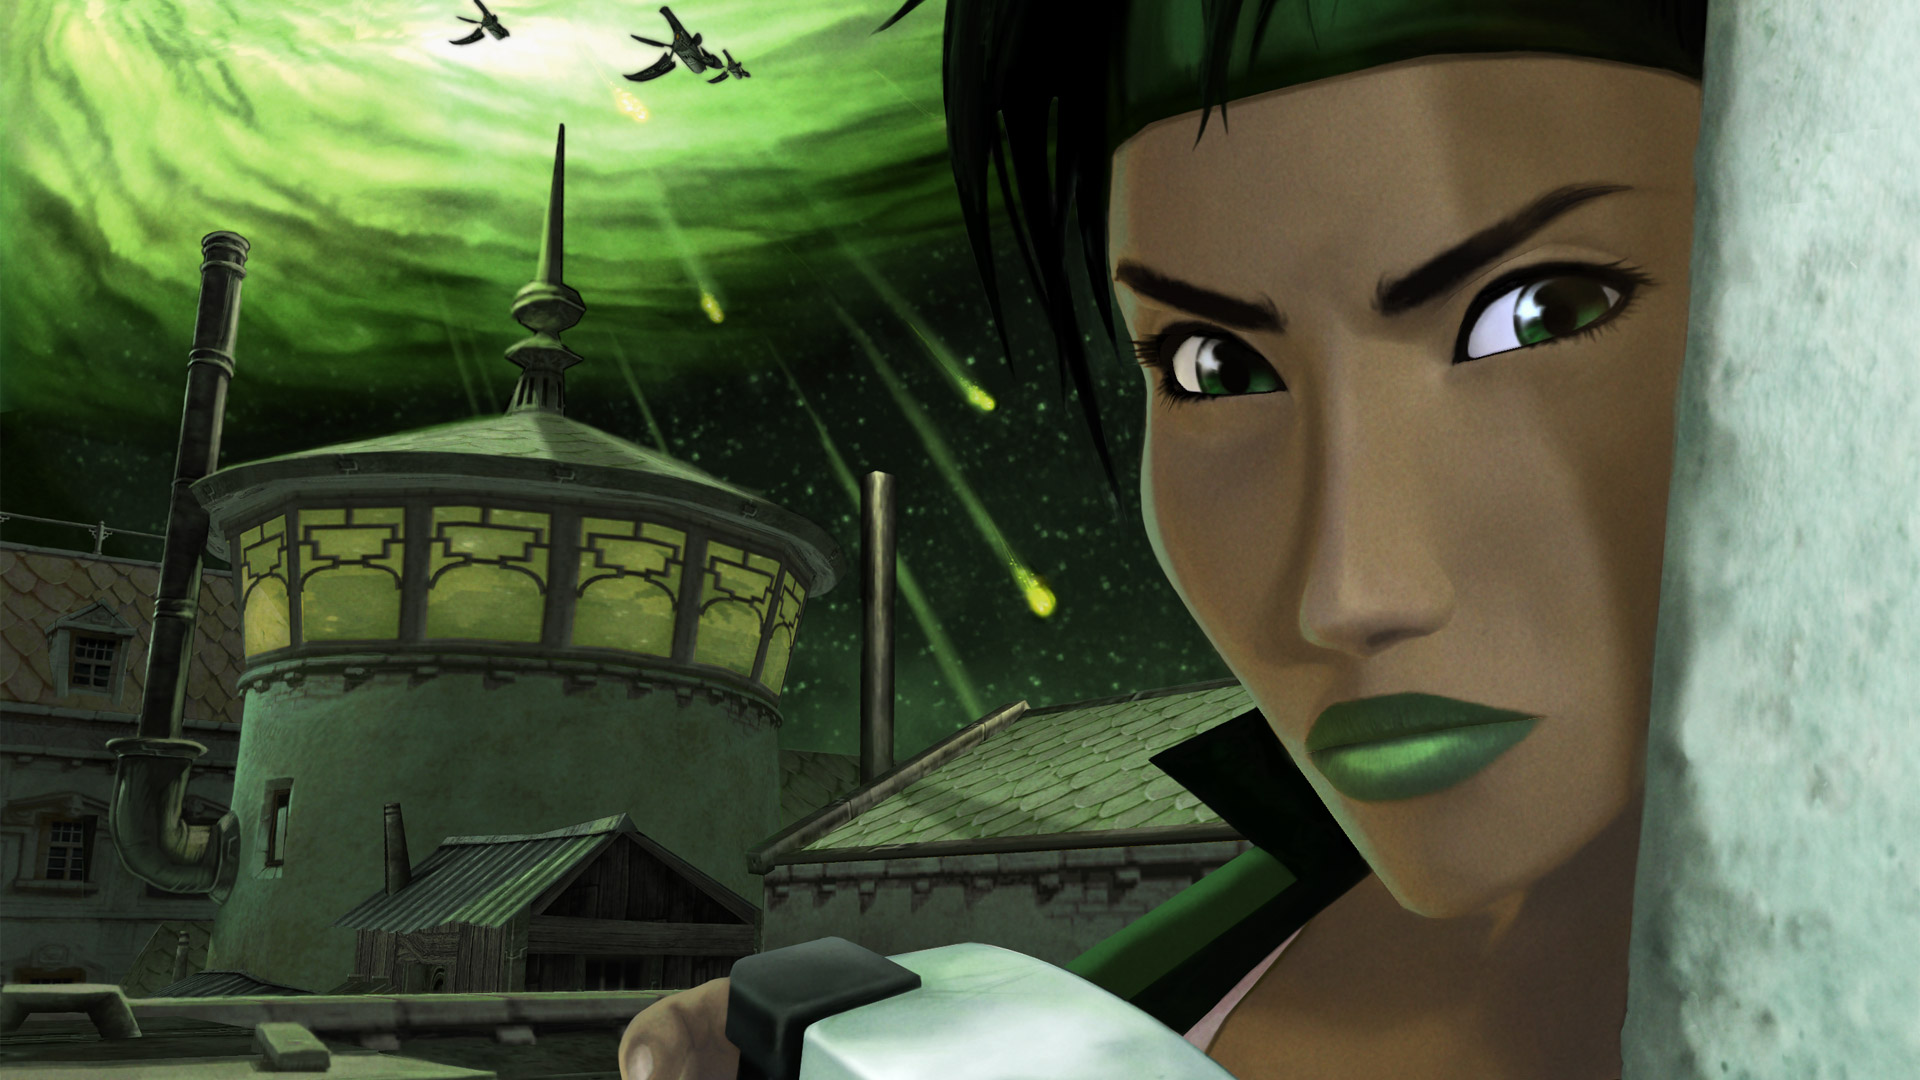 Free Beyond Good and Evil Wallpaper in 1920x1080